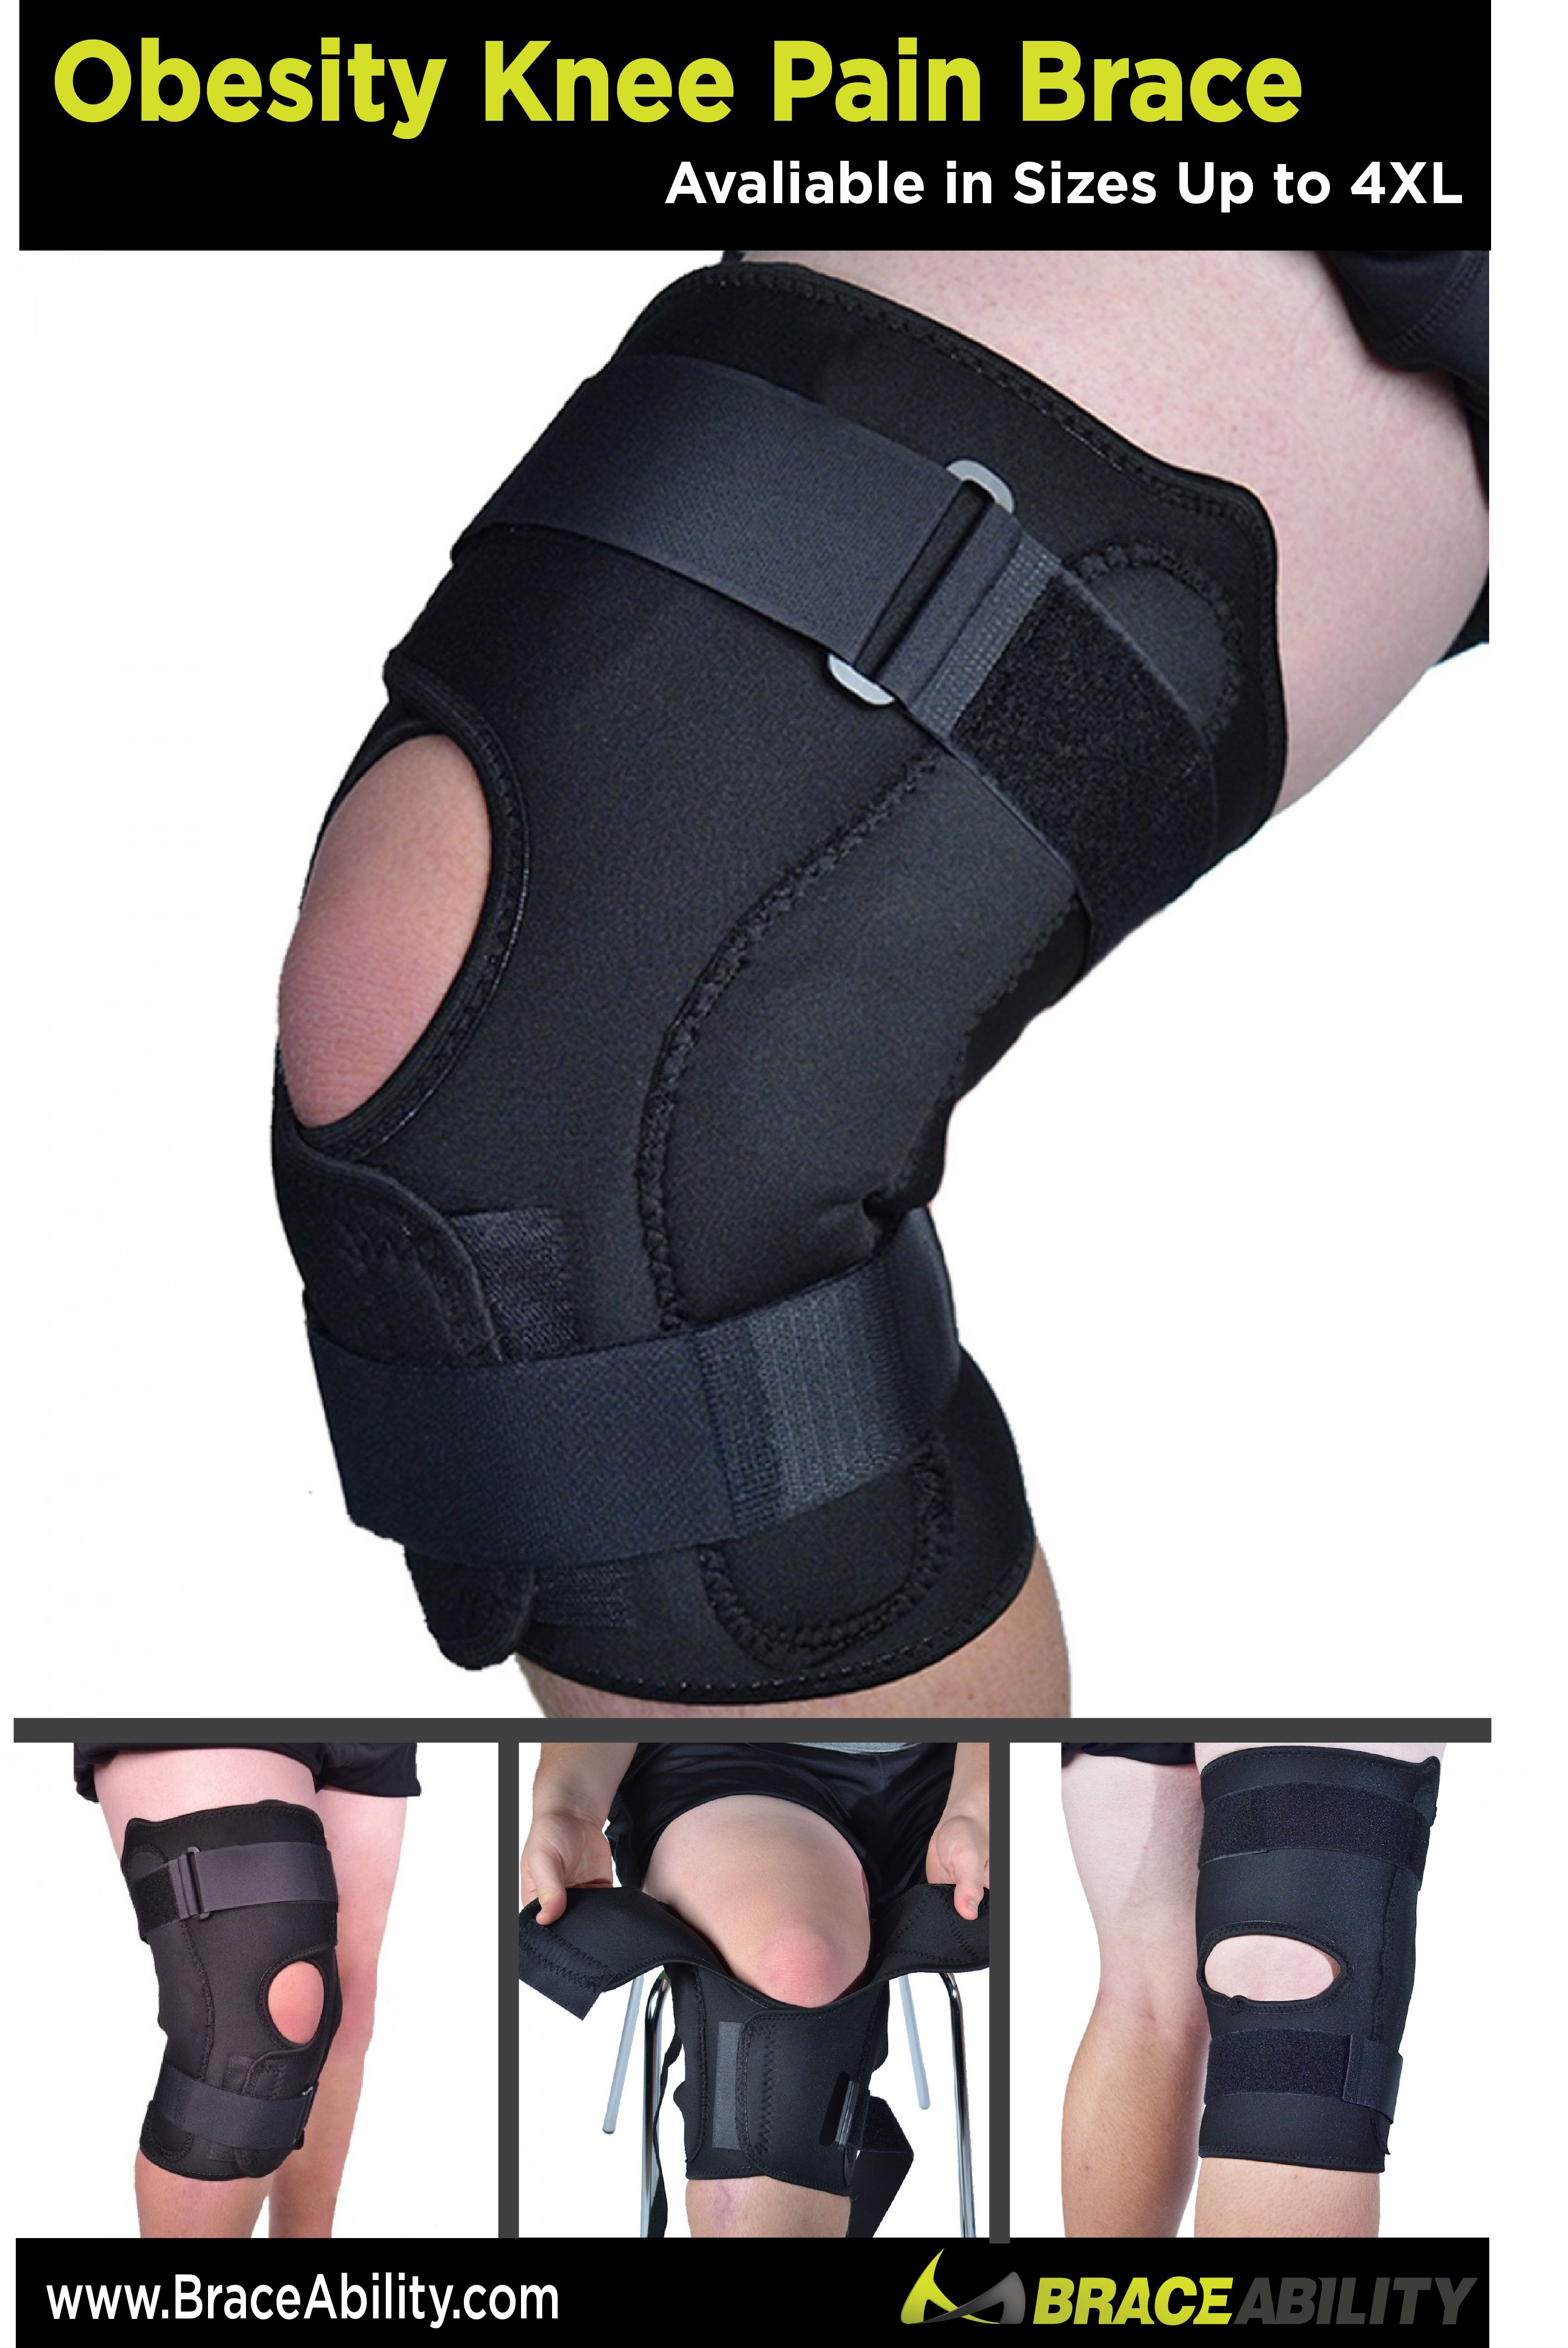 obesity knee pain brace-- this big knee brace has all the features